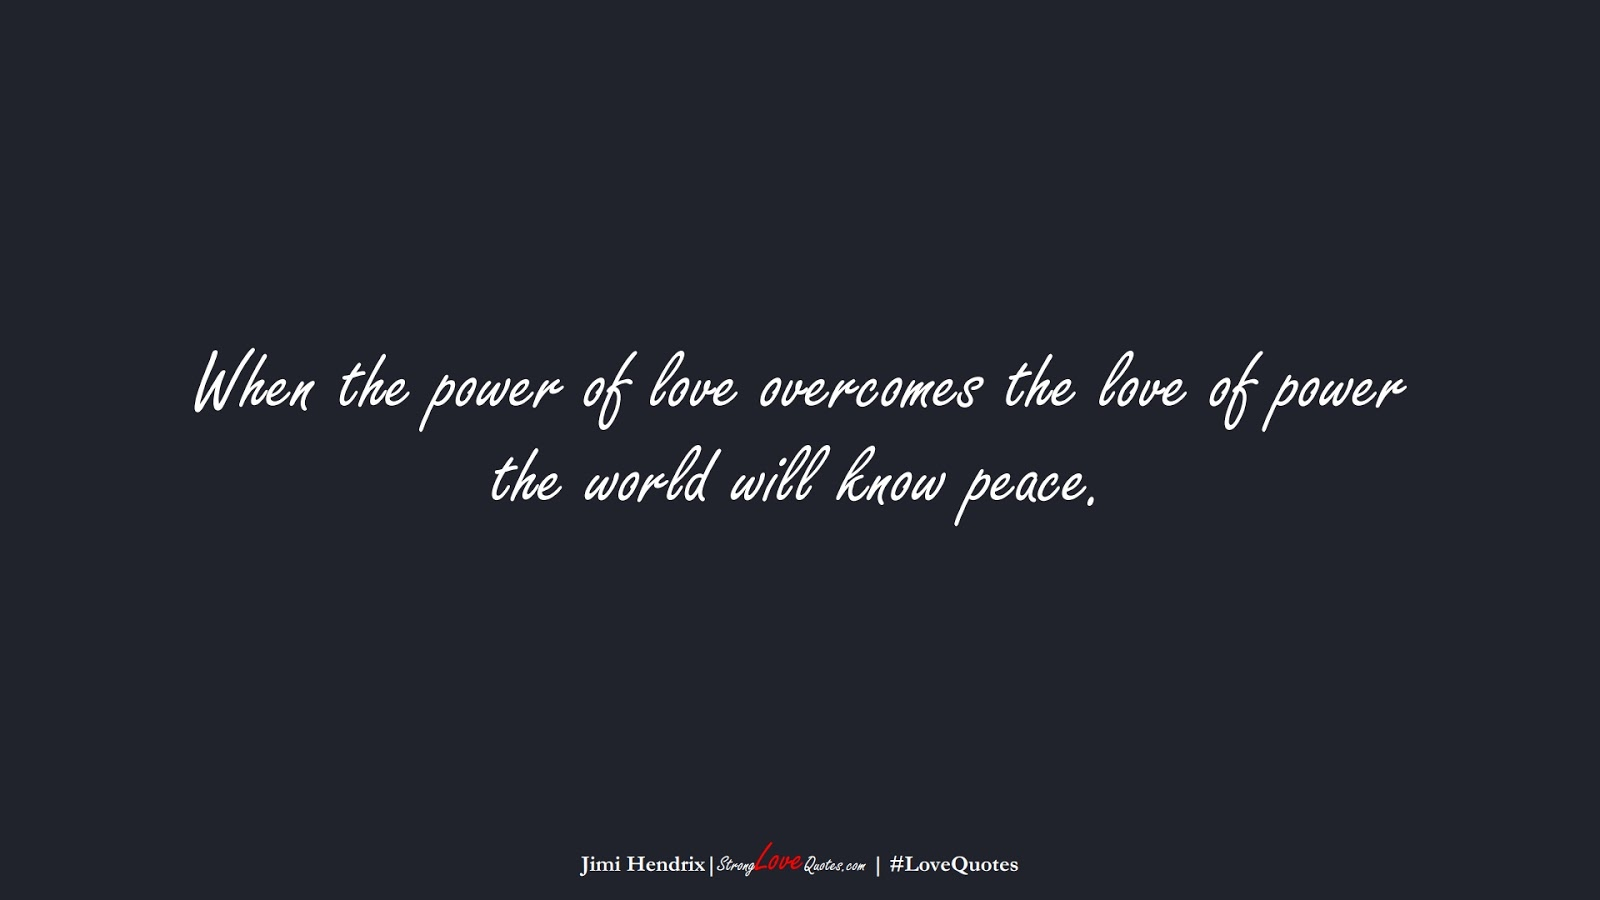 When the power of love overcomes the love of power the world will know peace. (Jimi Hendrix);  #LoveQuotes